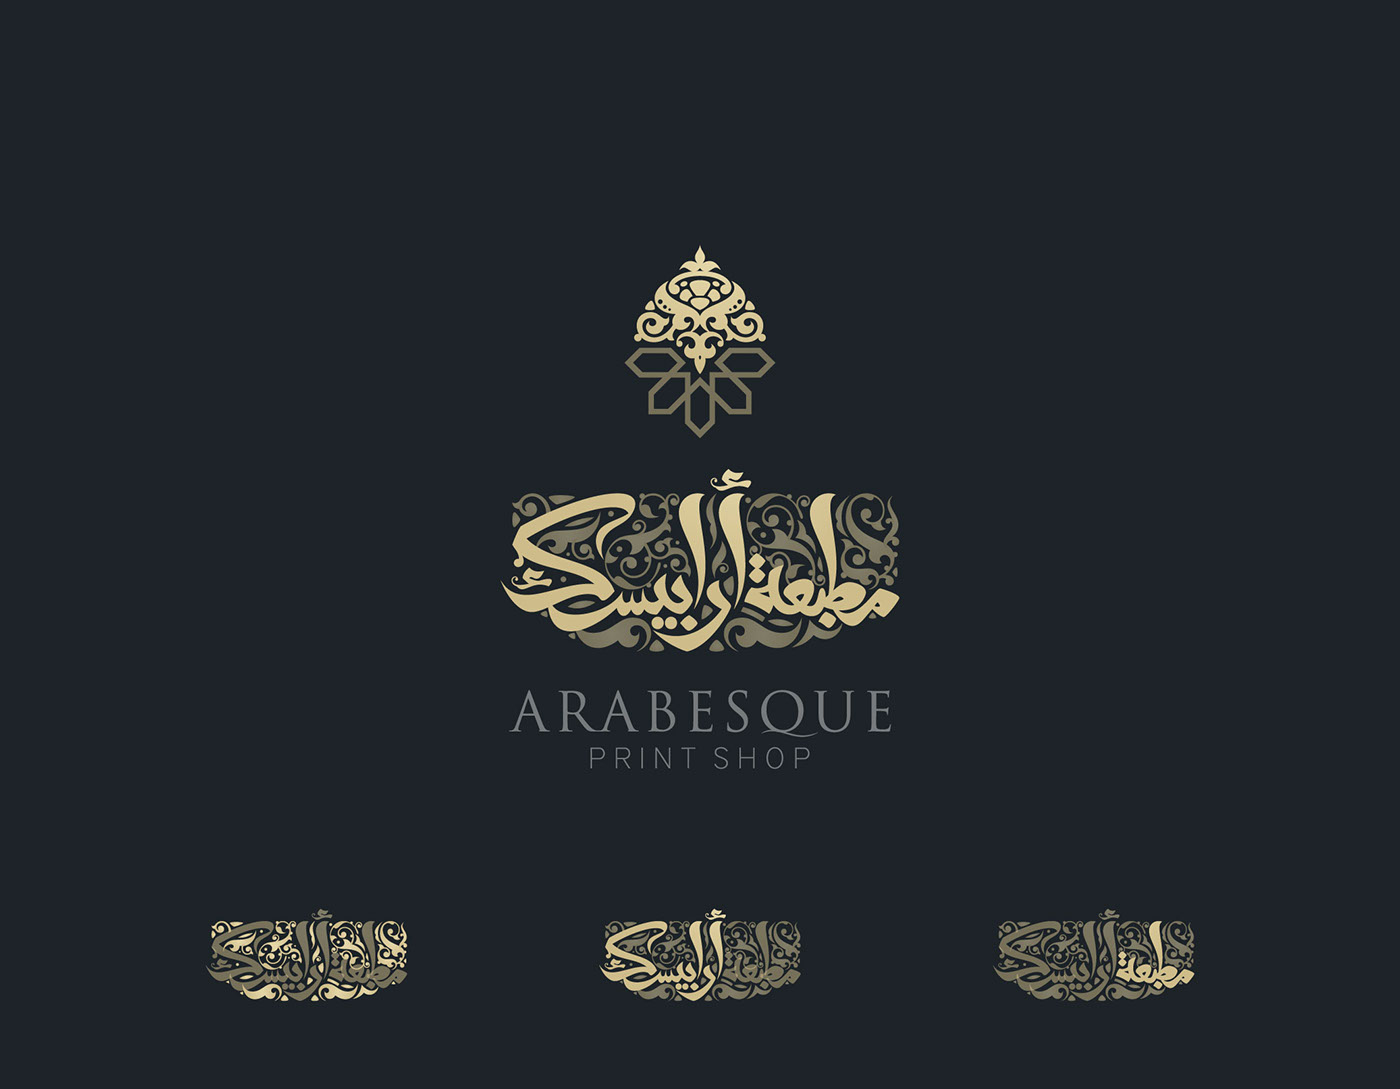 Arabic Logos Ii On Behance: calligraphy logo